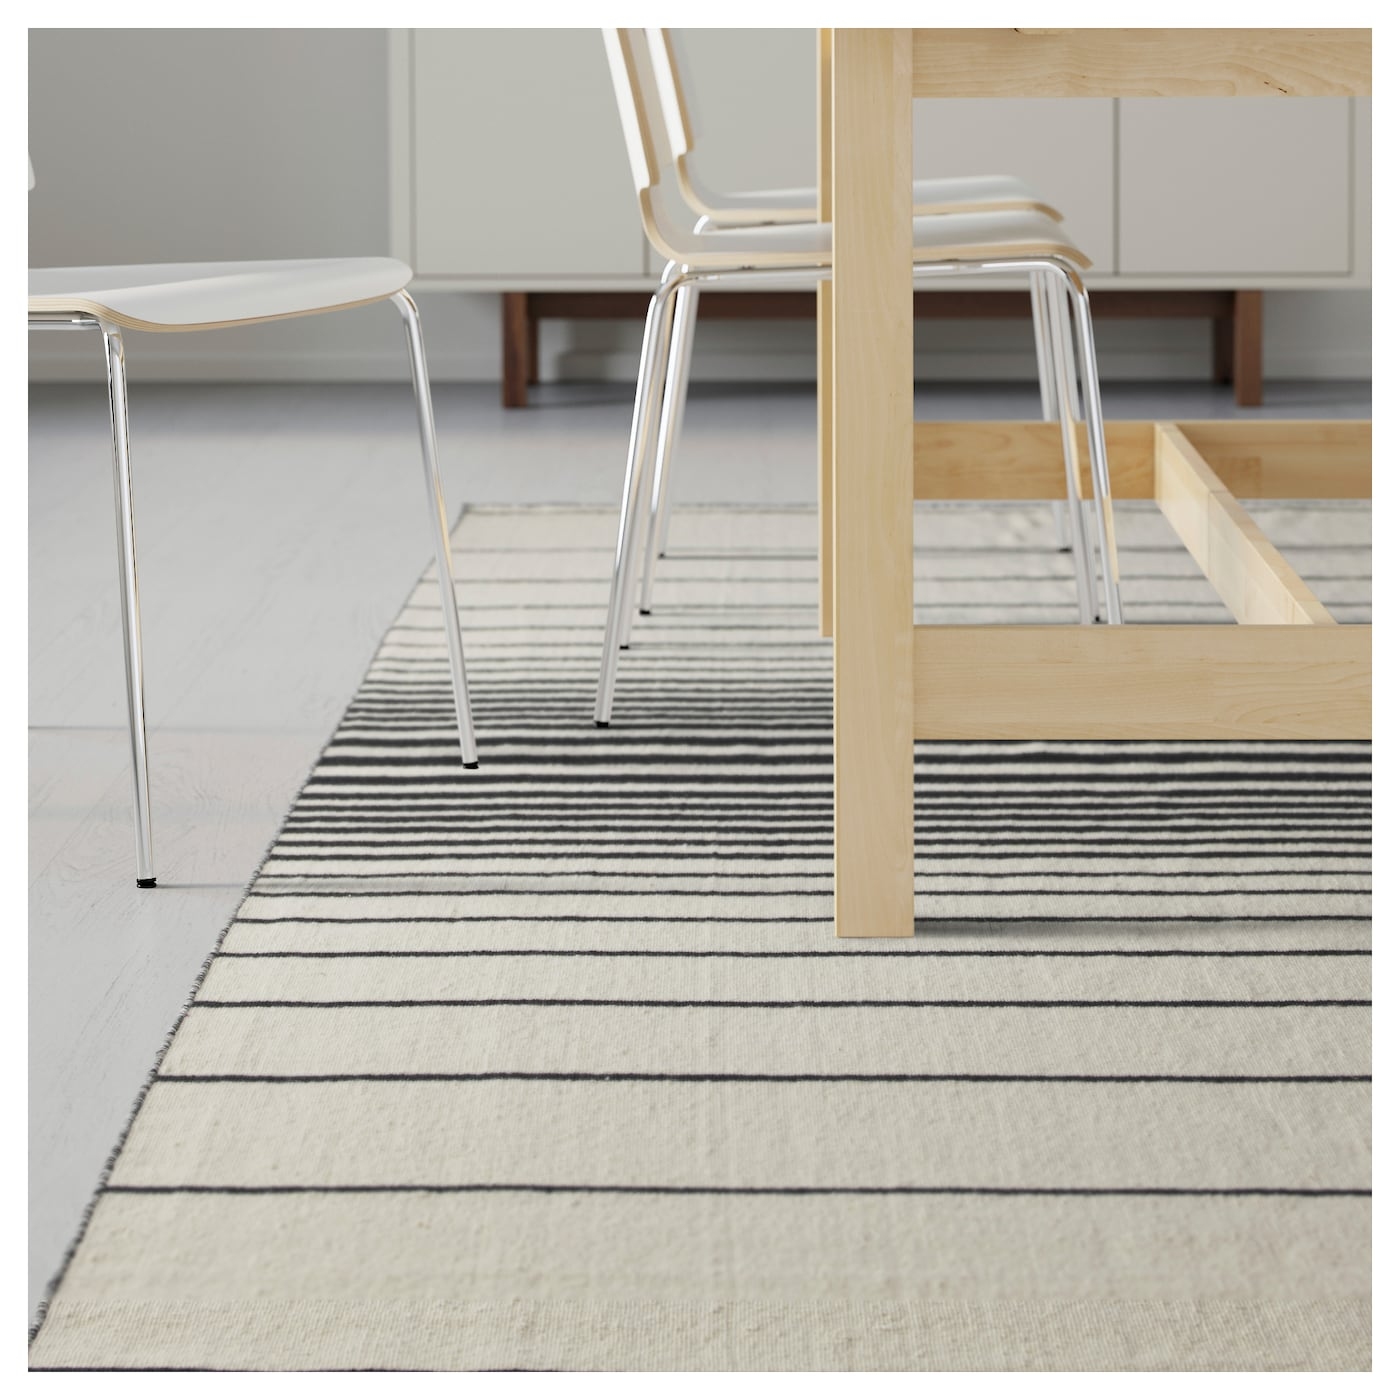 ristinge rug flatwoven handmade off white black 200x300 cm ikea. Black Bedroom Furniture Sets. Home Design Ideas